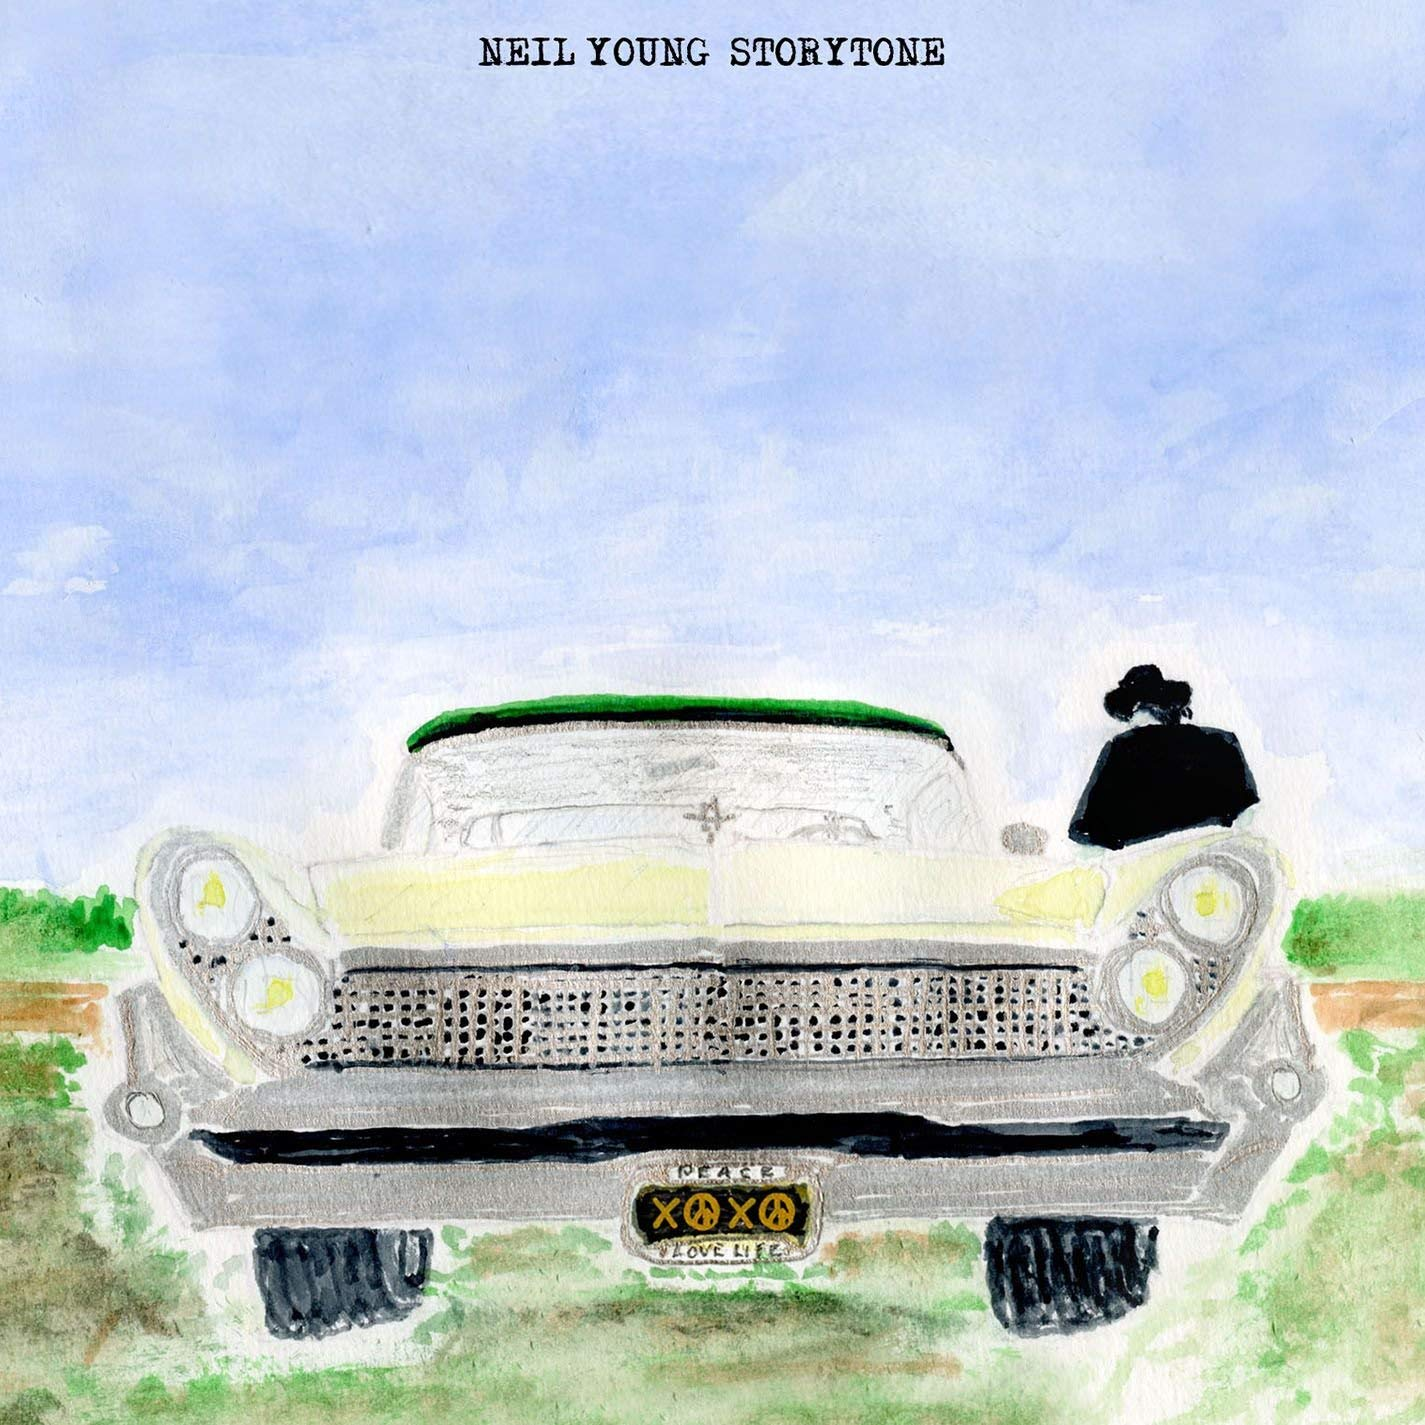 Neil Young, Storytone